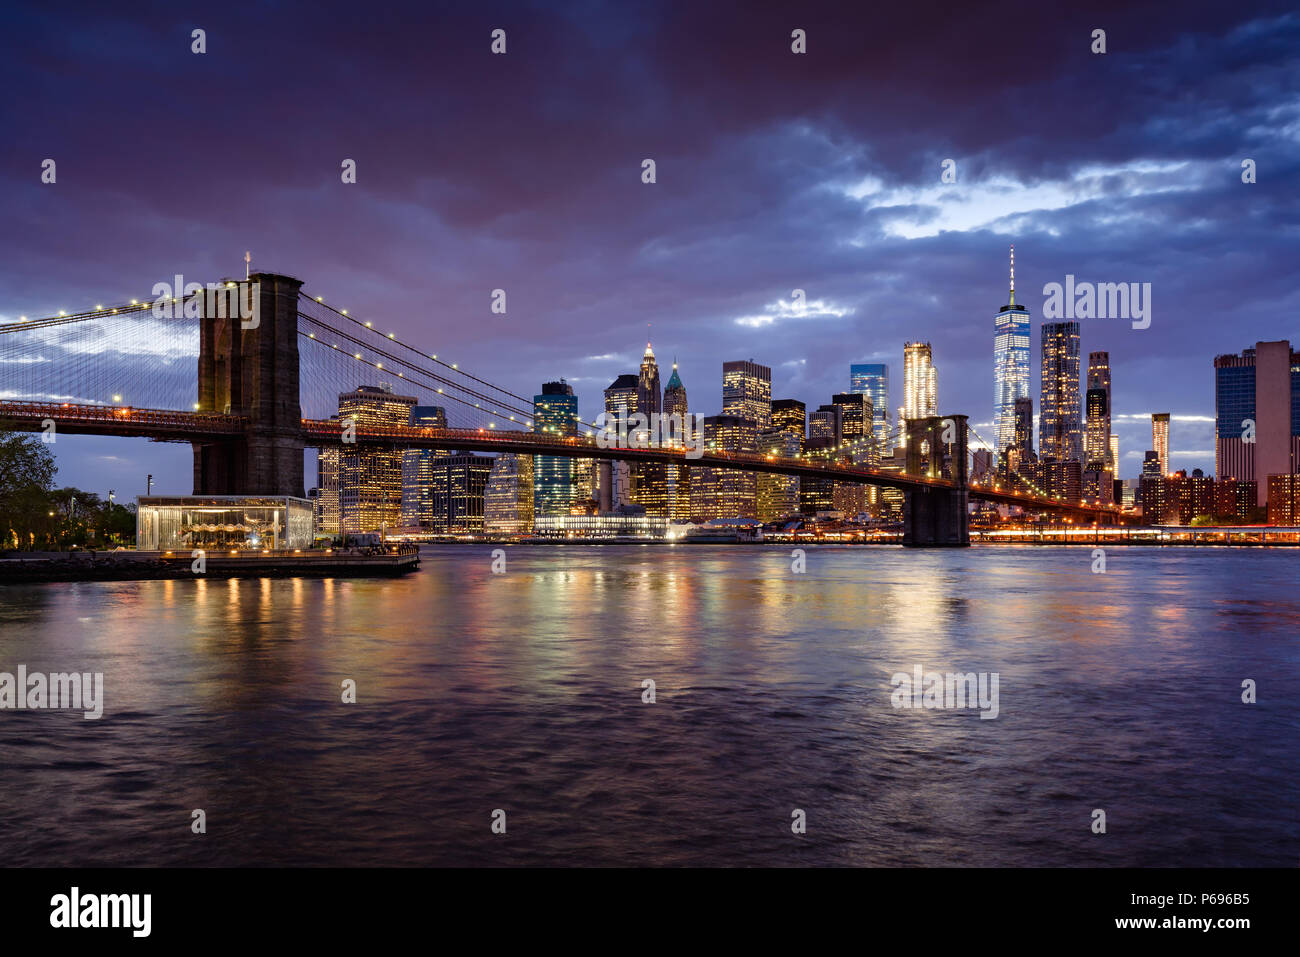 Brooklyn Bridge and illuminated Lower Manhattan skyscrapers at dusk with the East River. Manhattan, New York City, USA - Stock Image